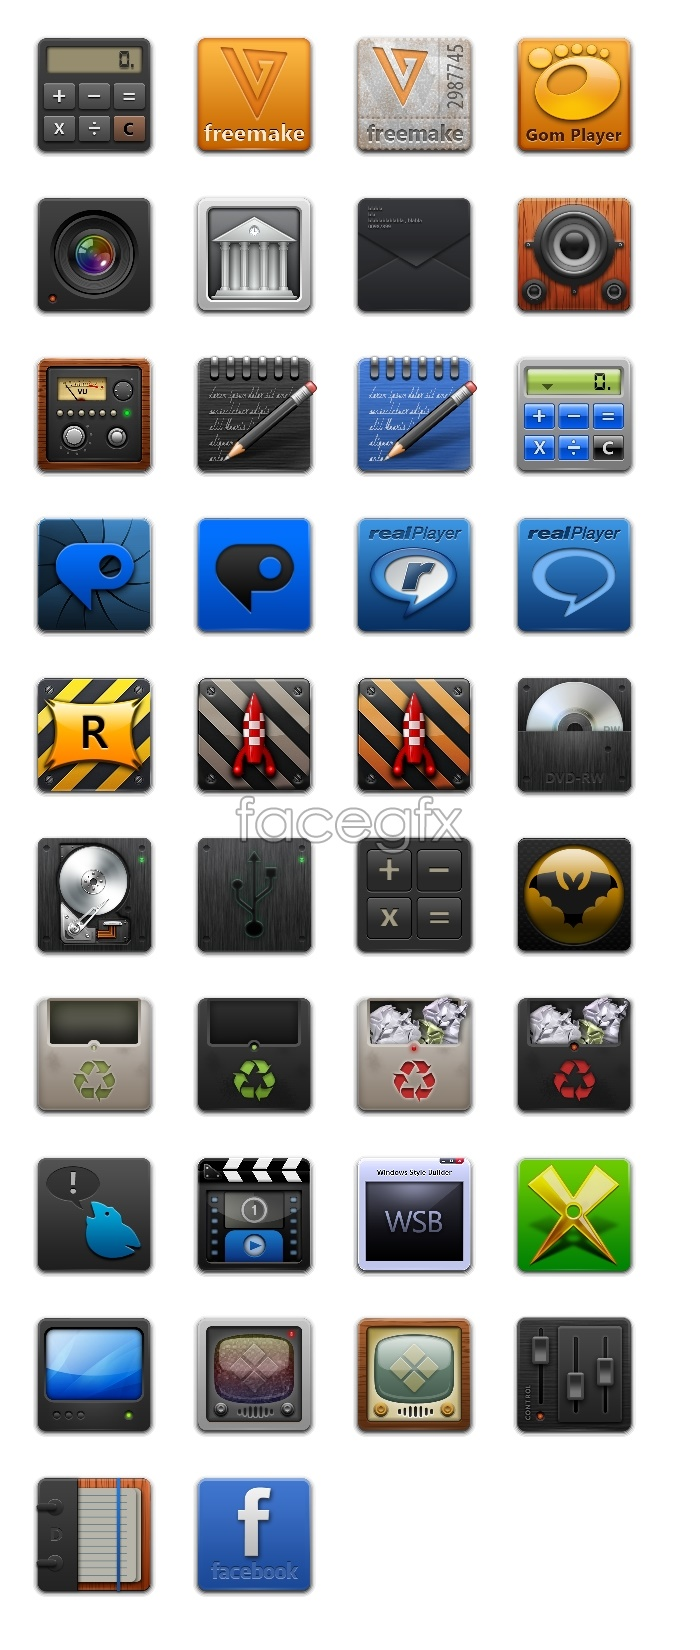 Cell phone transparent icon material